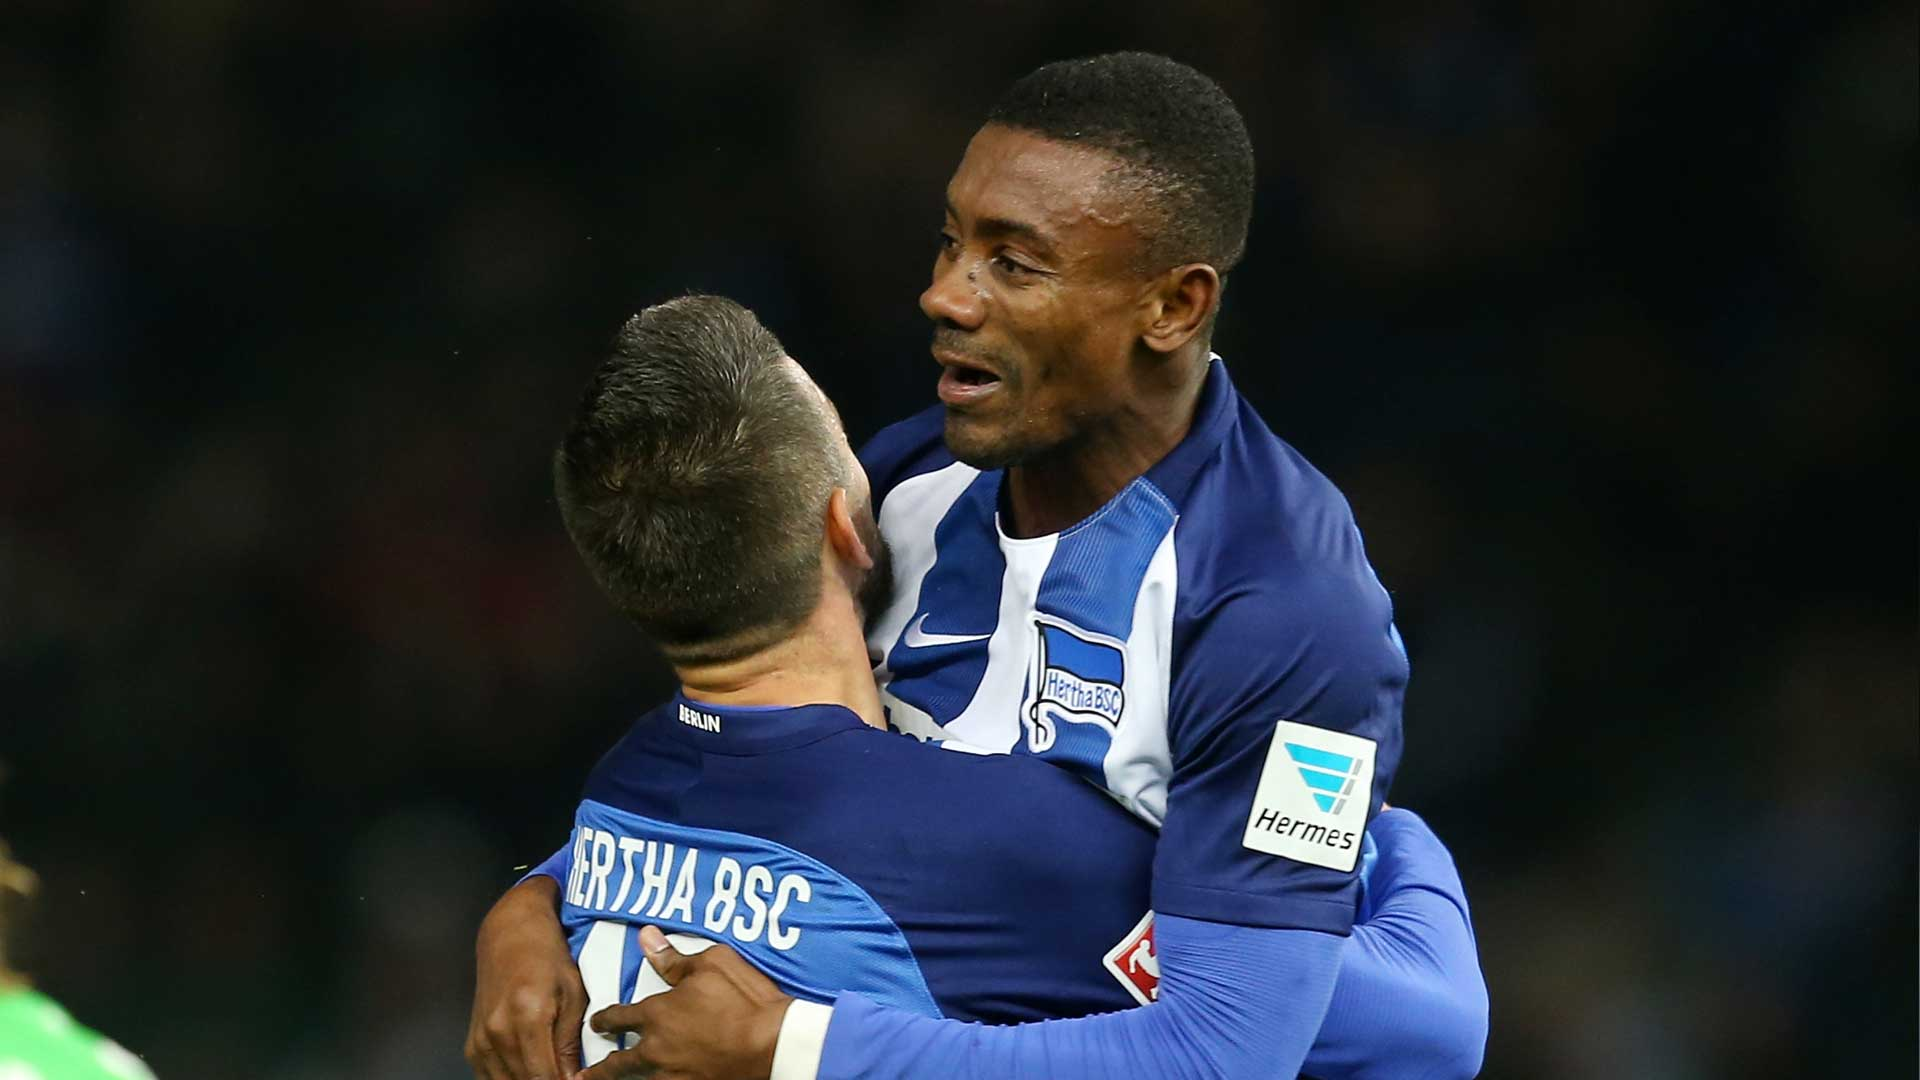 Super-sub Salomon Kalou seals Hertha Berlin comeback vs. Hamburg